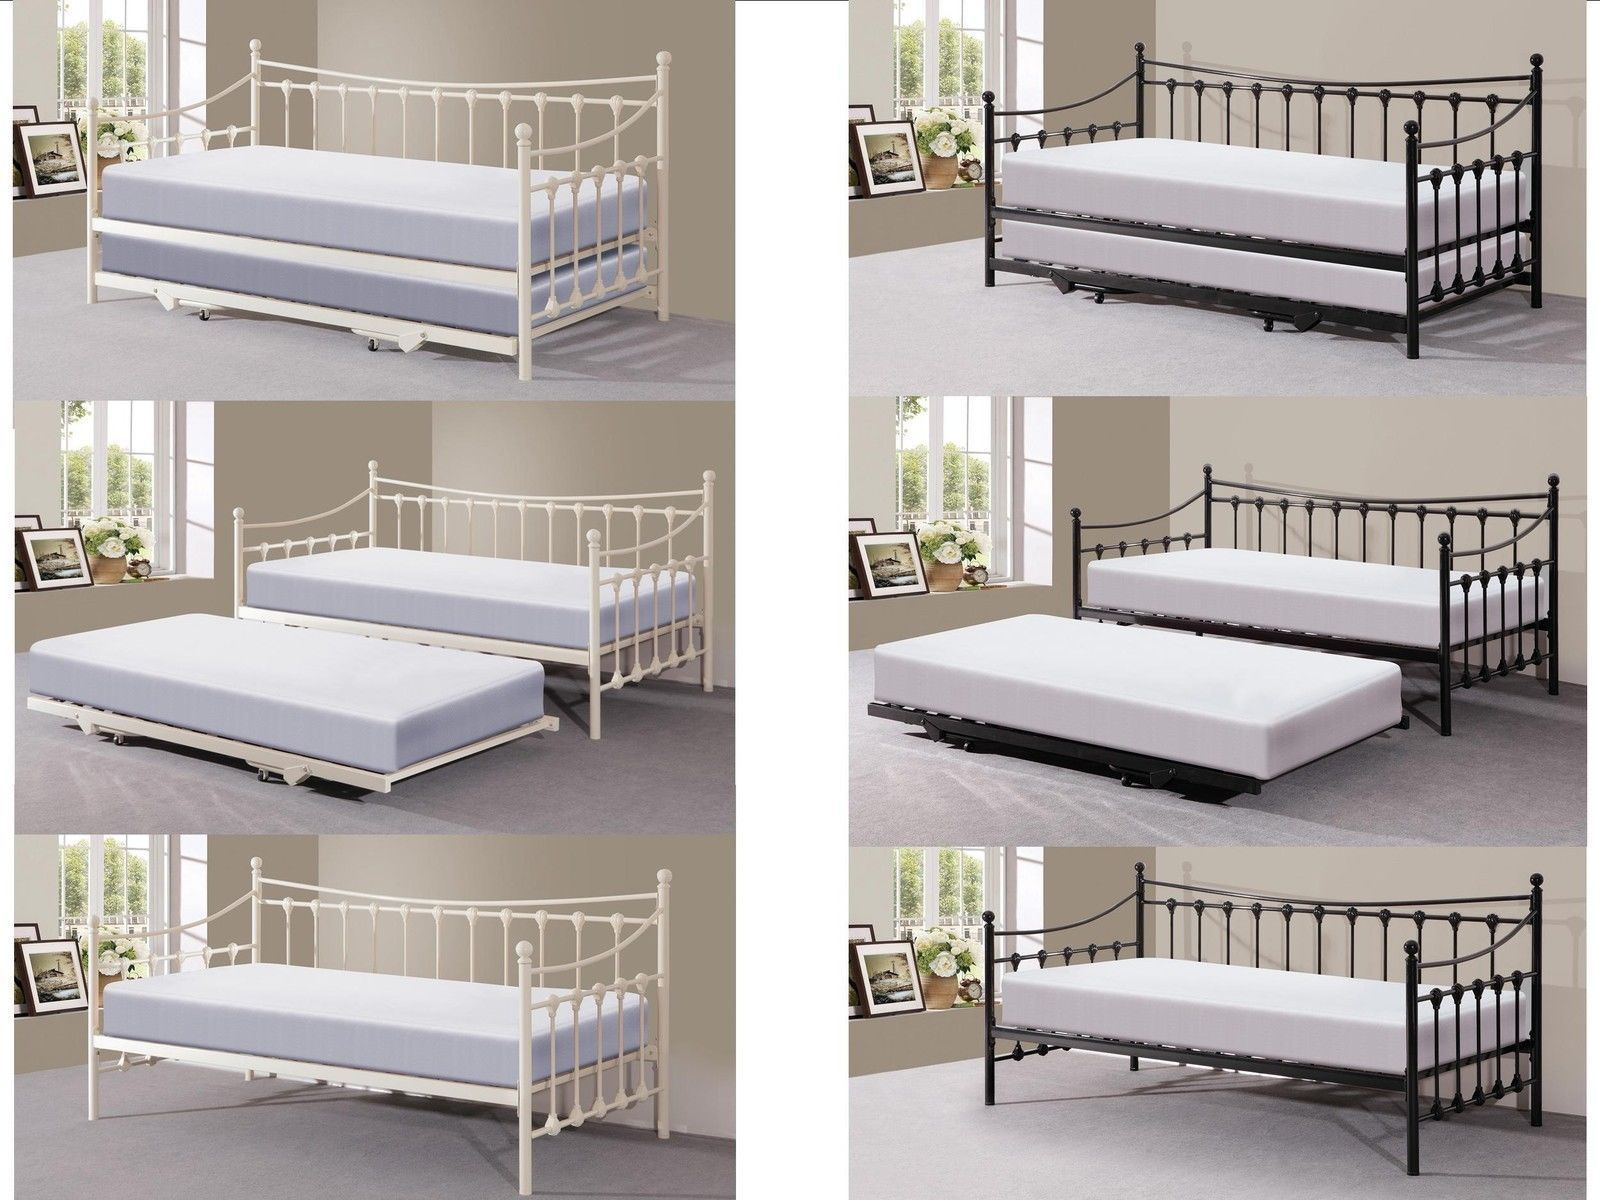 Metal Guest Day Bed With Trundle With Or Without